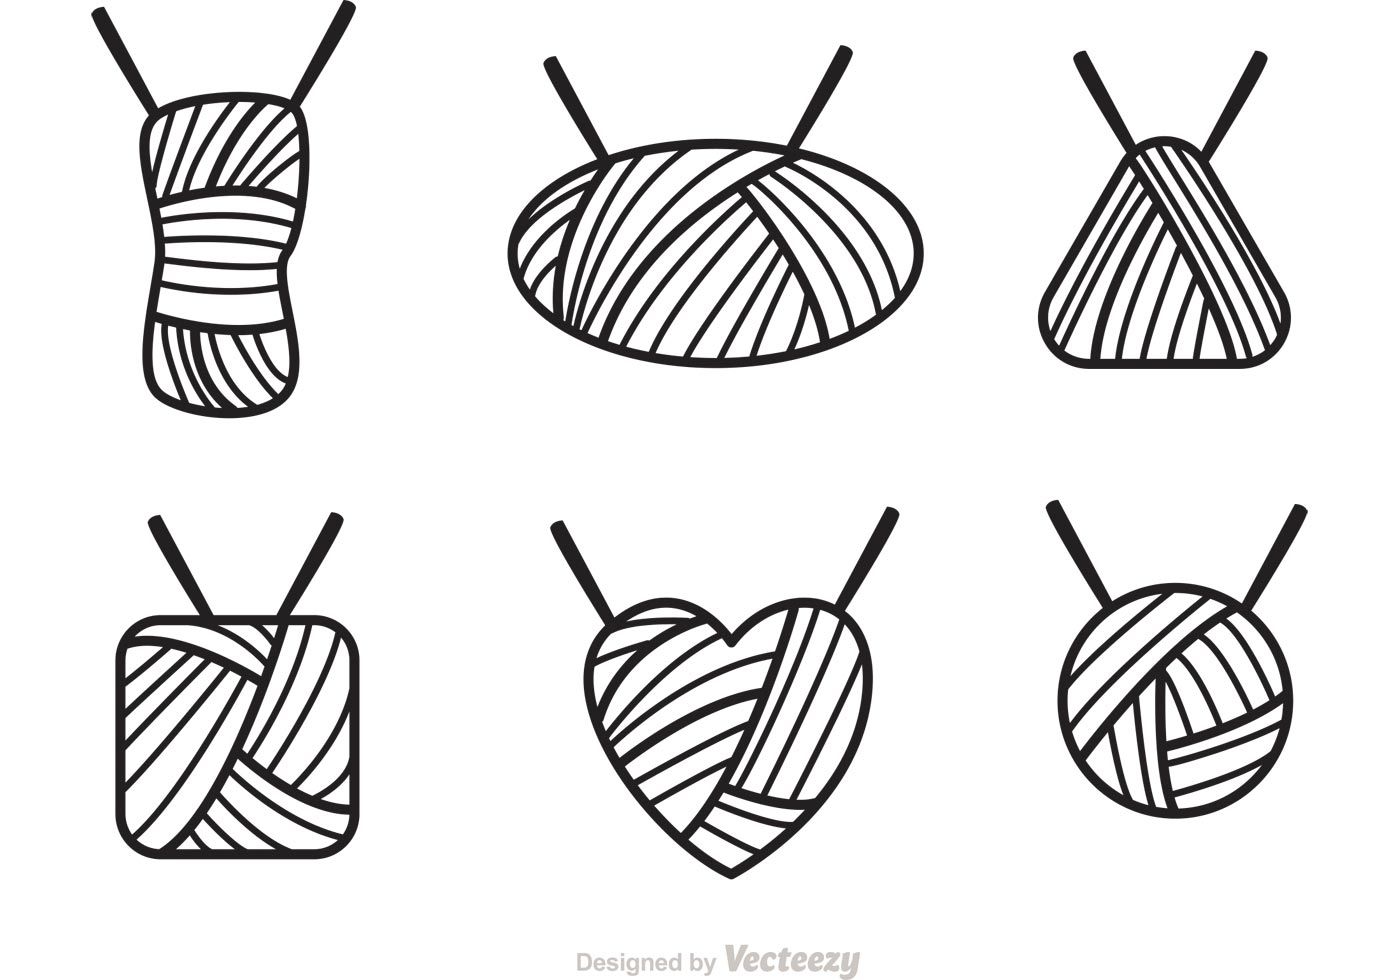 Ball Of Yarn Outline Icons Vector